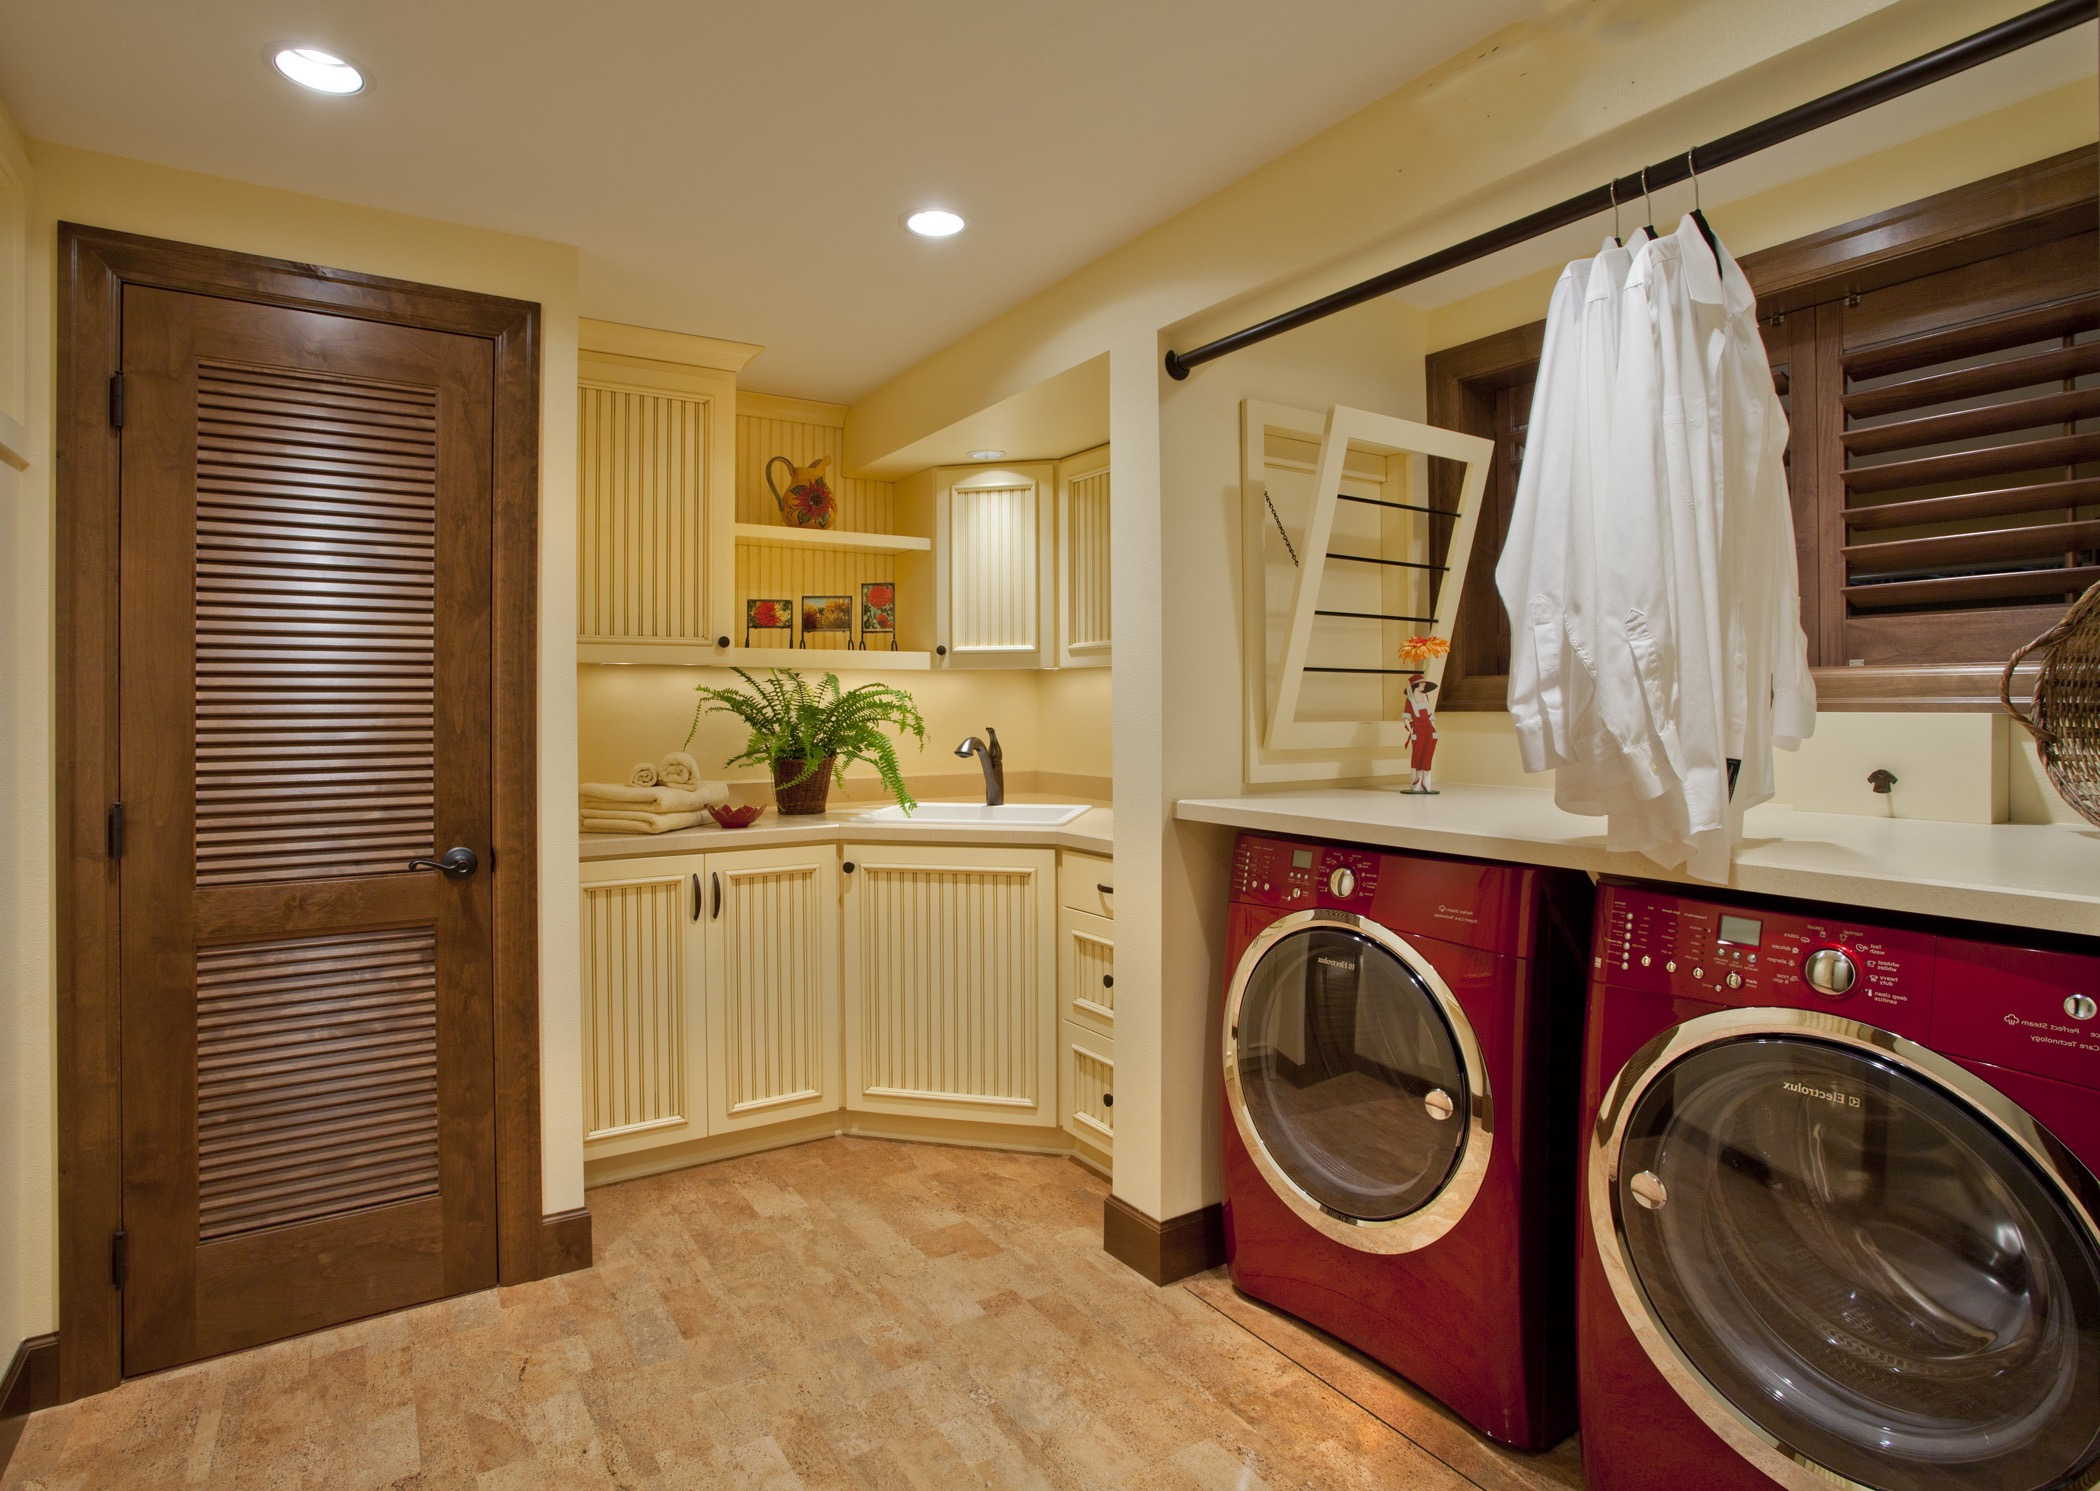 Apartment Laundry Room And Corner Kitchen Interior Combination (Image 1 of 7)